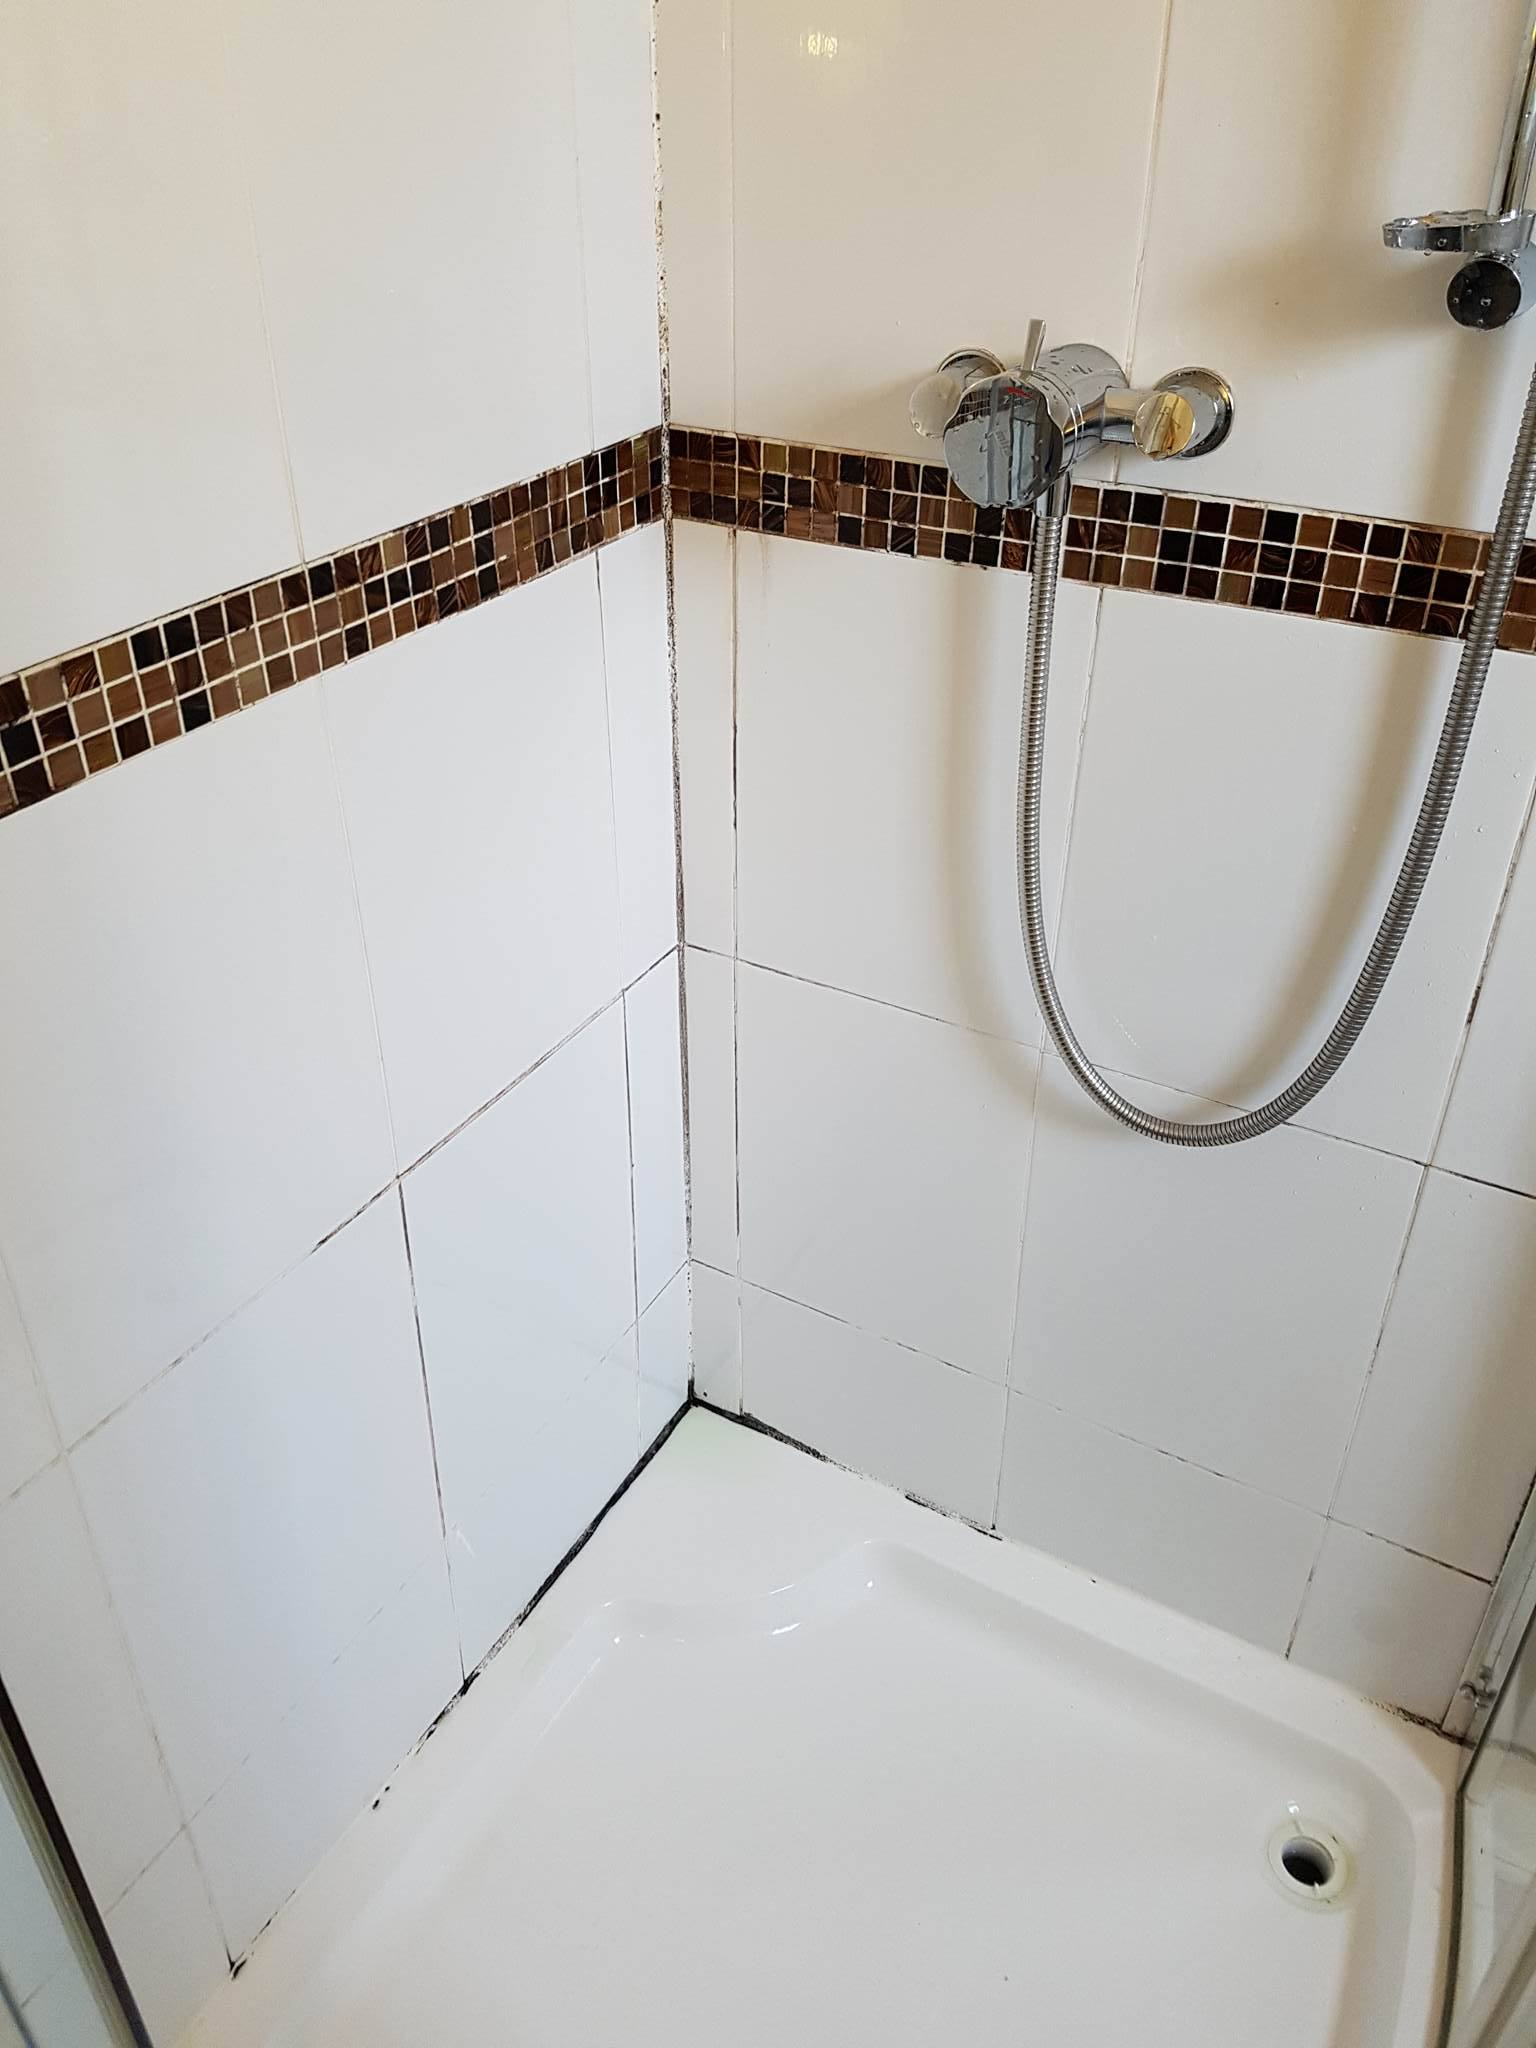 Ceramic Tiled Shower Cubicle Before Restoration Moston